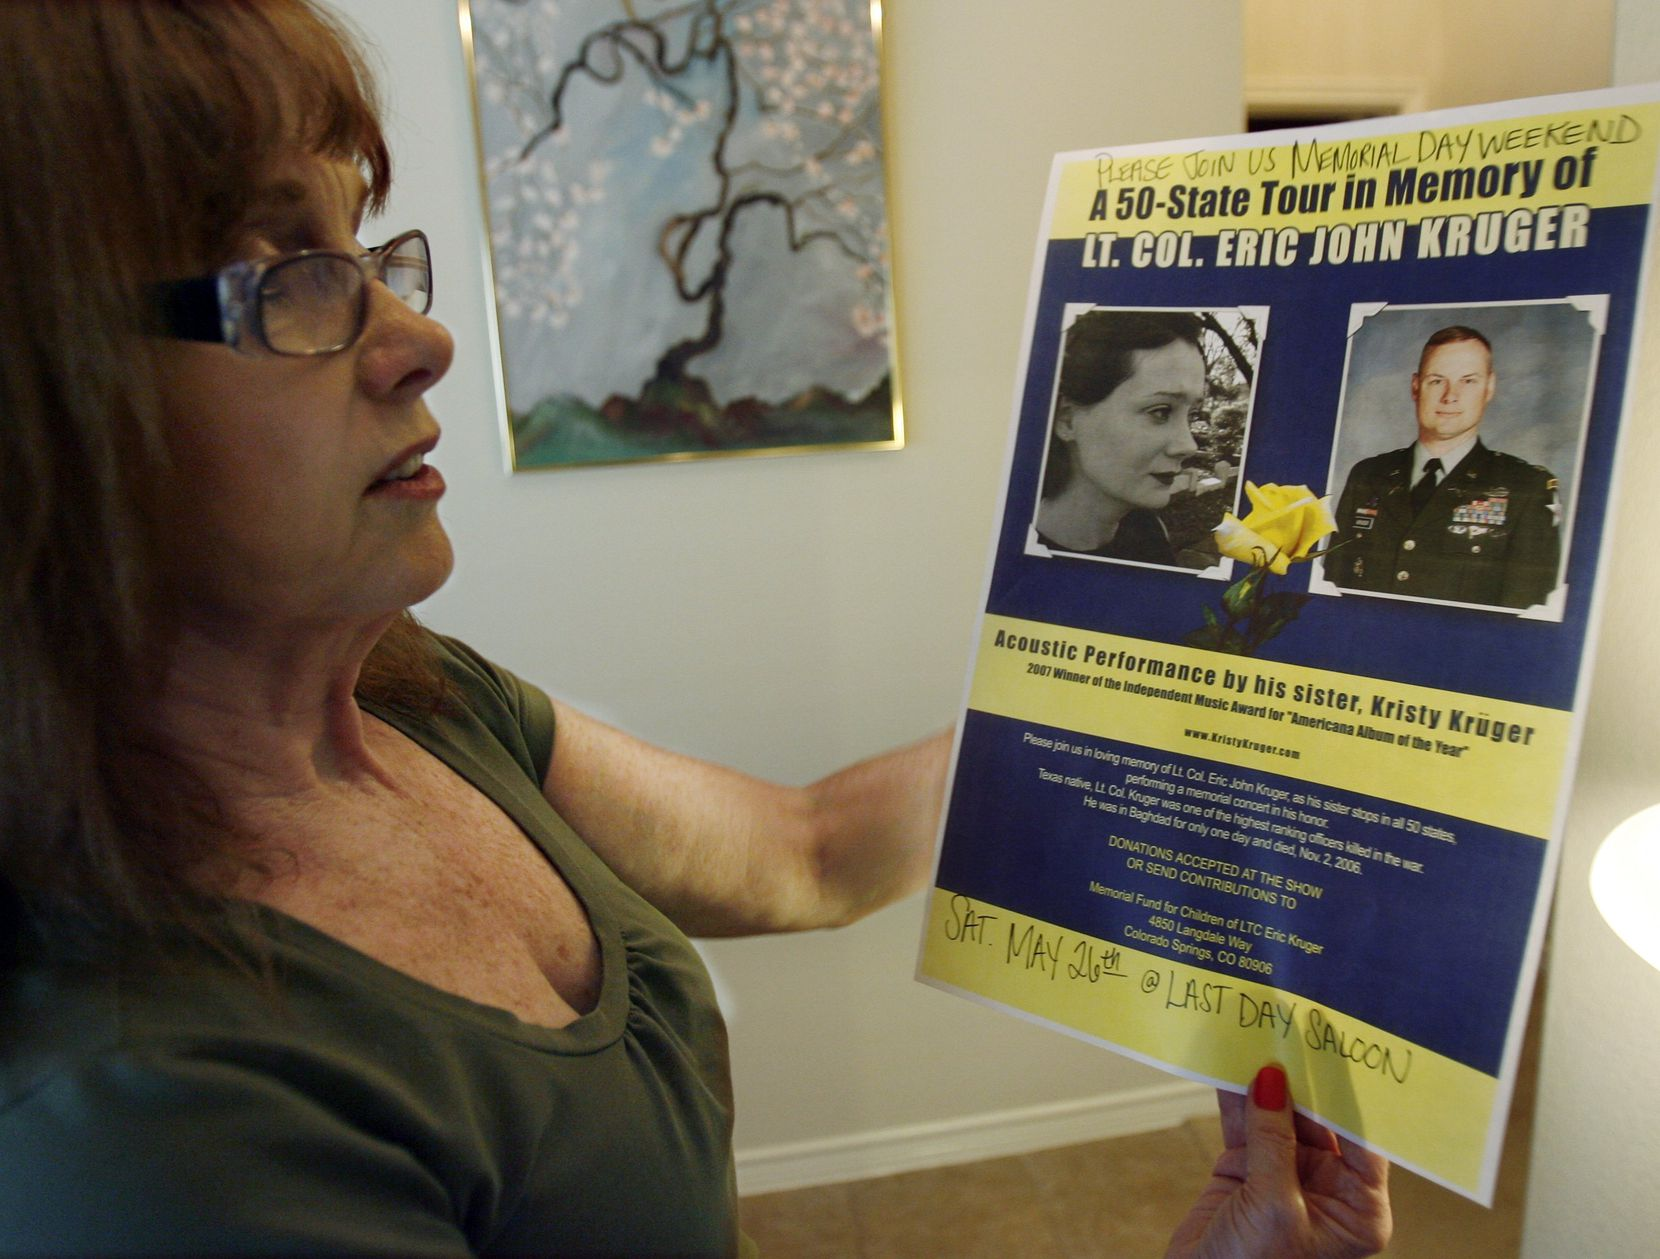 Carol Kruger, mother of Eric and Kristy Kruger, examines a tour flyer about her daughter, who in 2007 planned a tour to honor her late brother after he died while serving with the U.S. Army in Iraq.